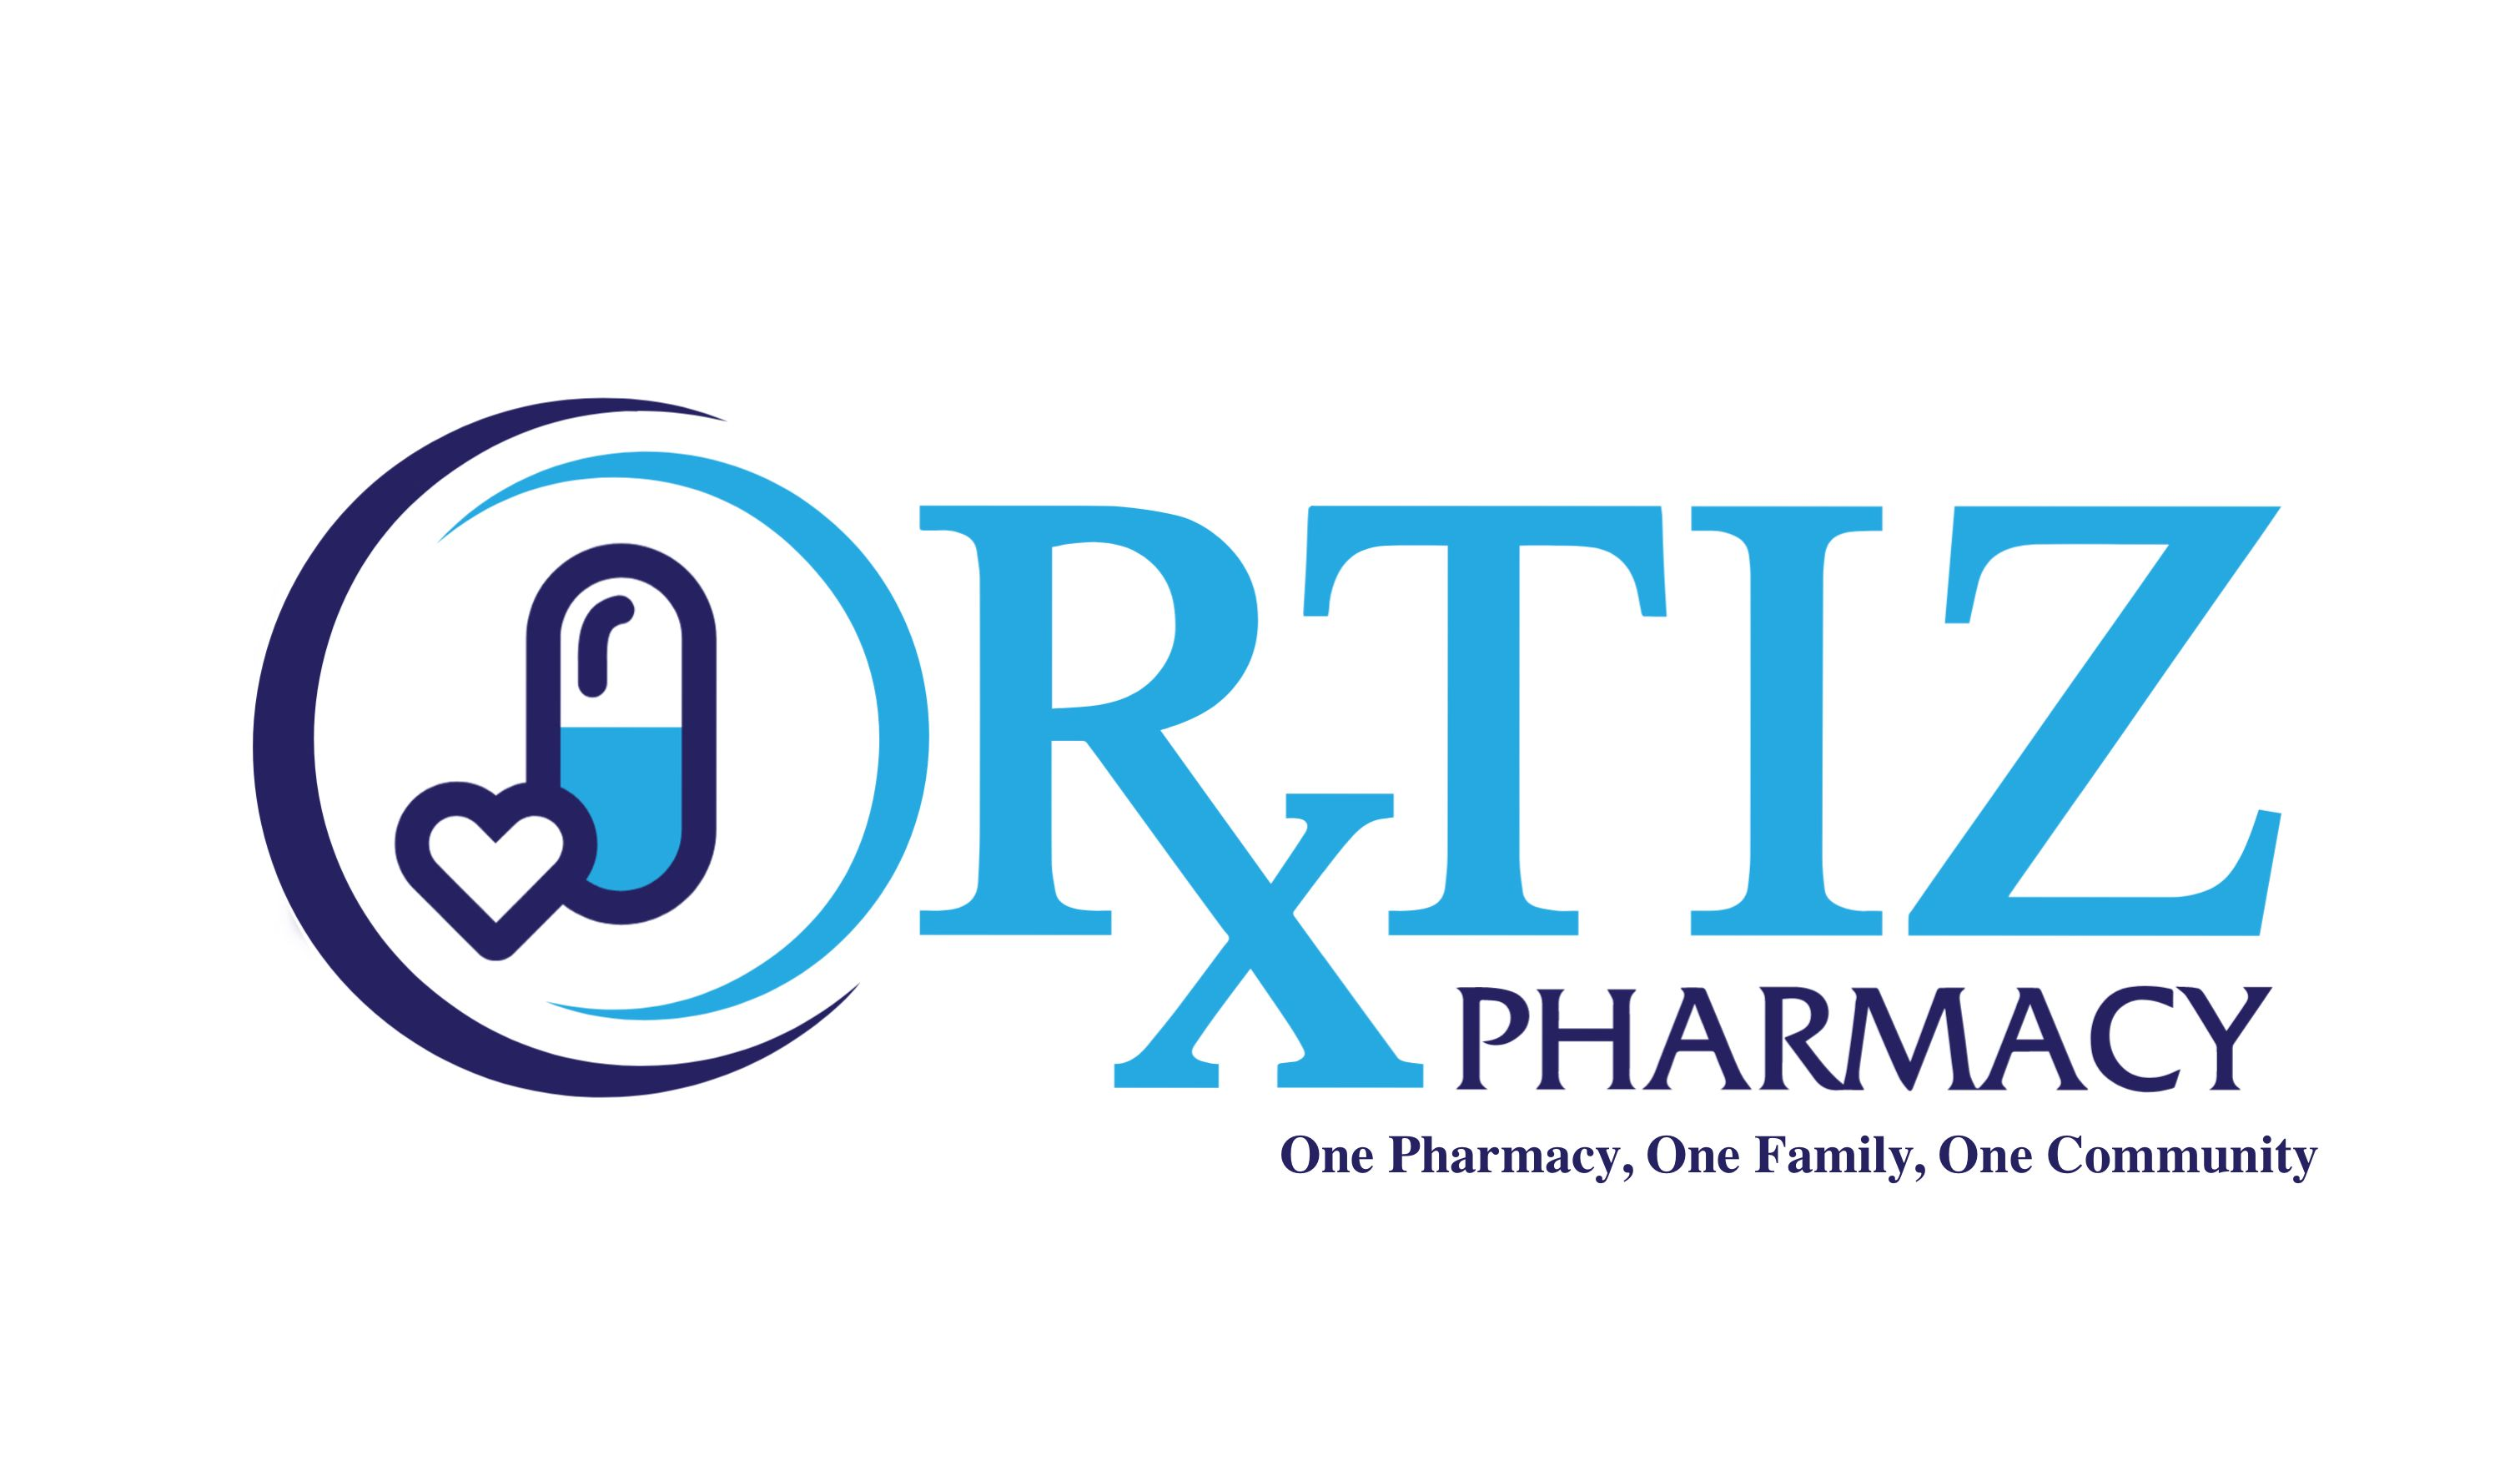 Ortiz Pharmacy